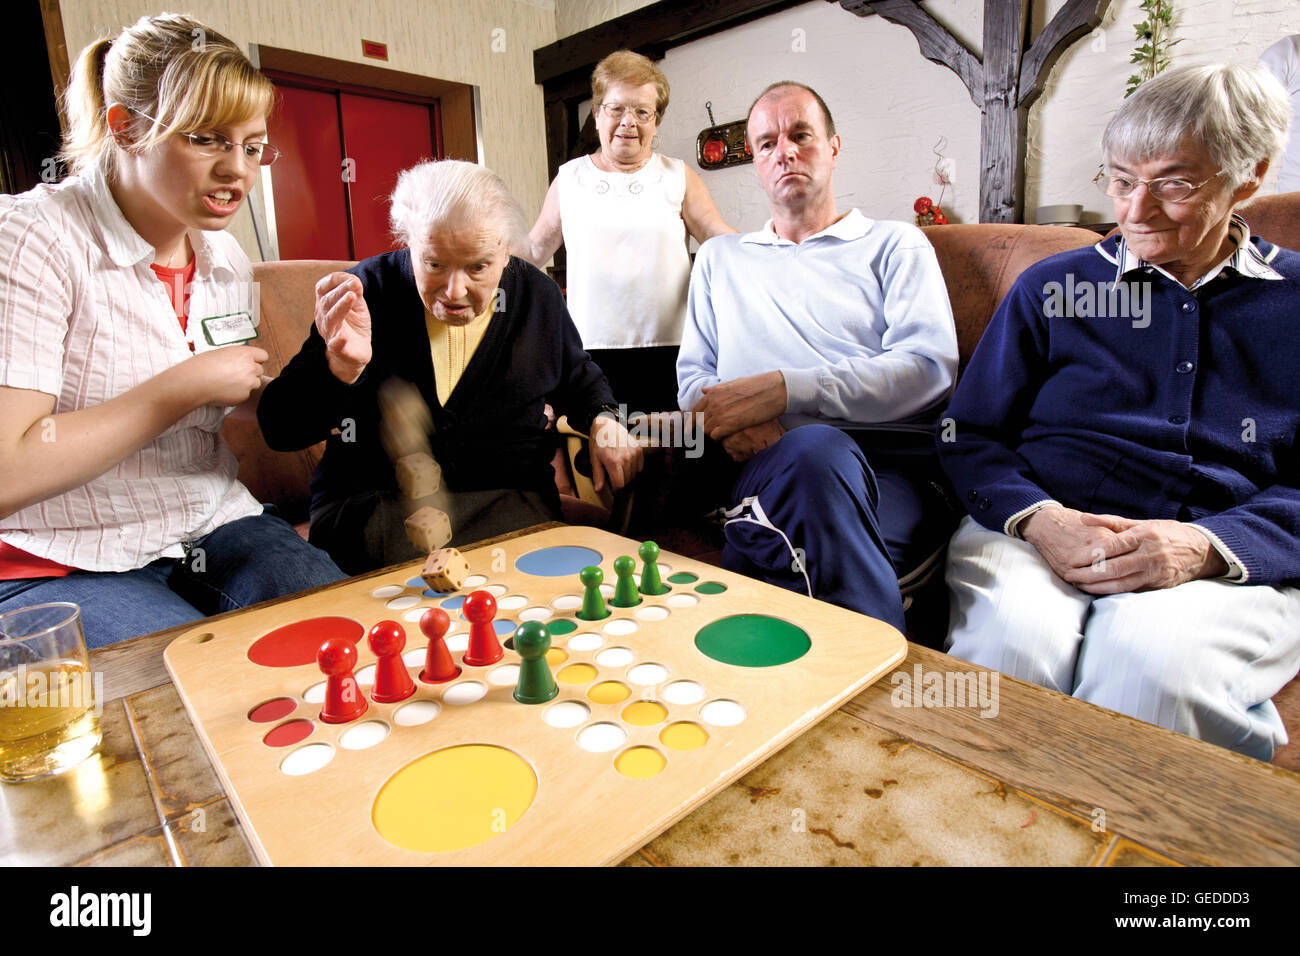 Nurses And Residents Of An Old Age Home Or Nursing Home Playing Board Stock Photo Alamy